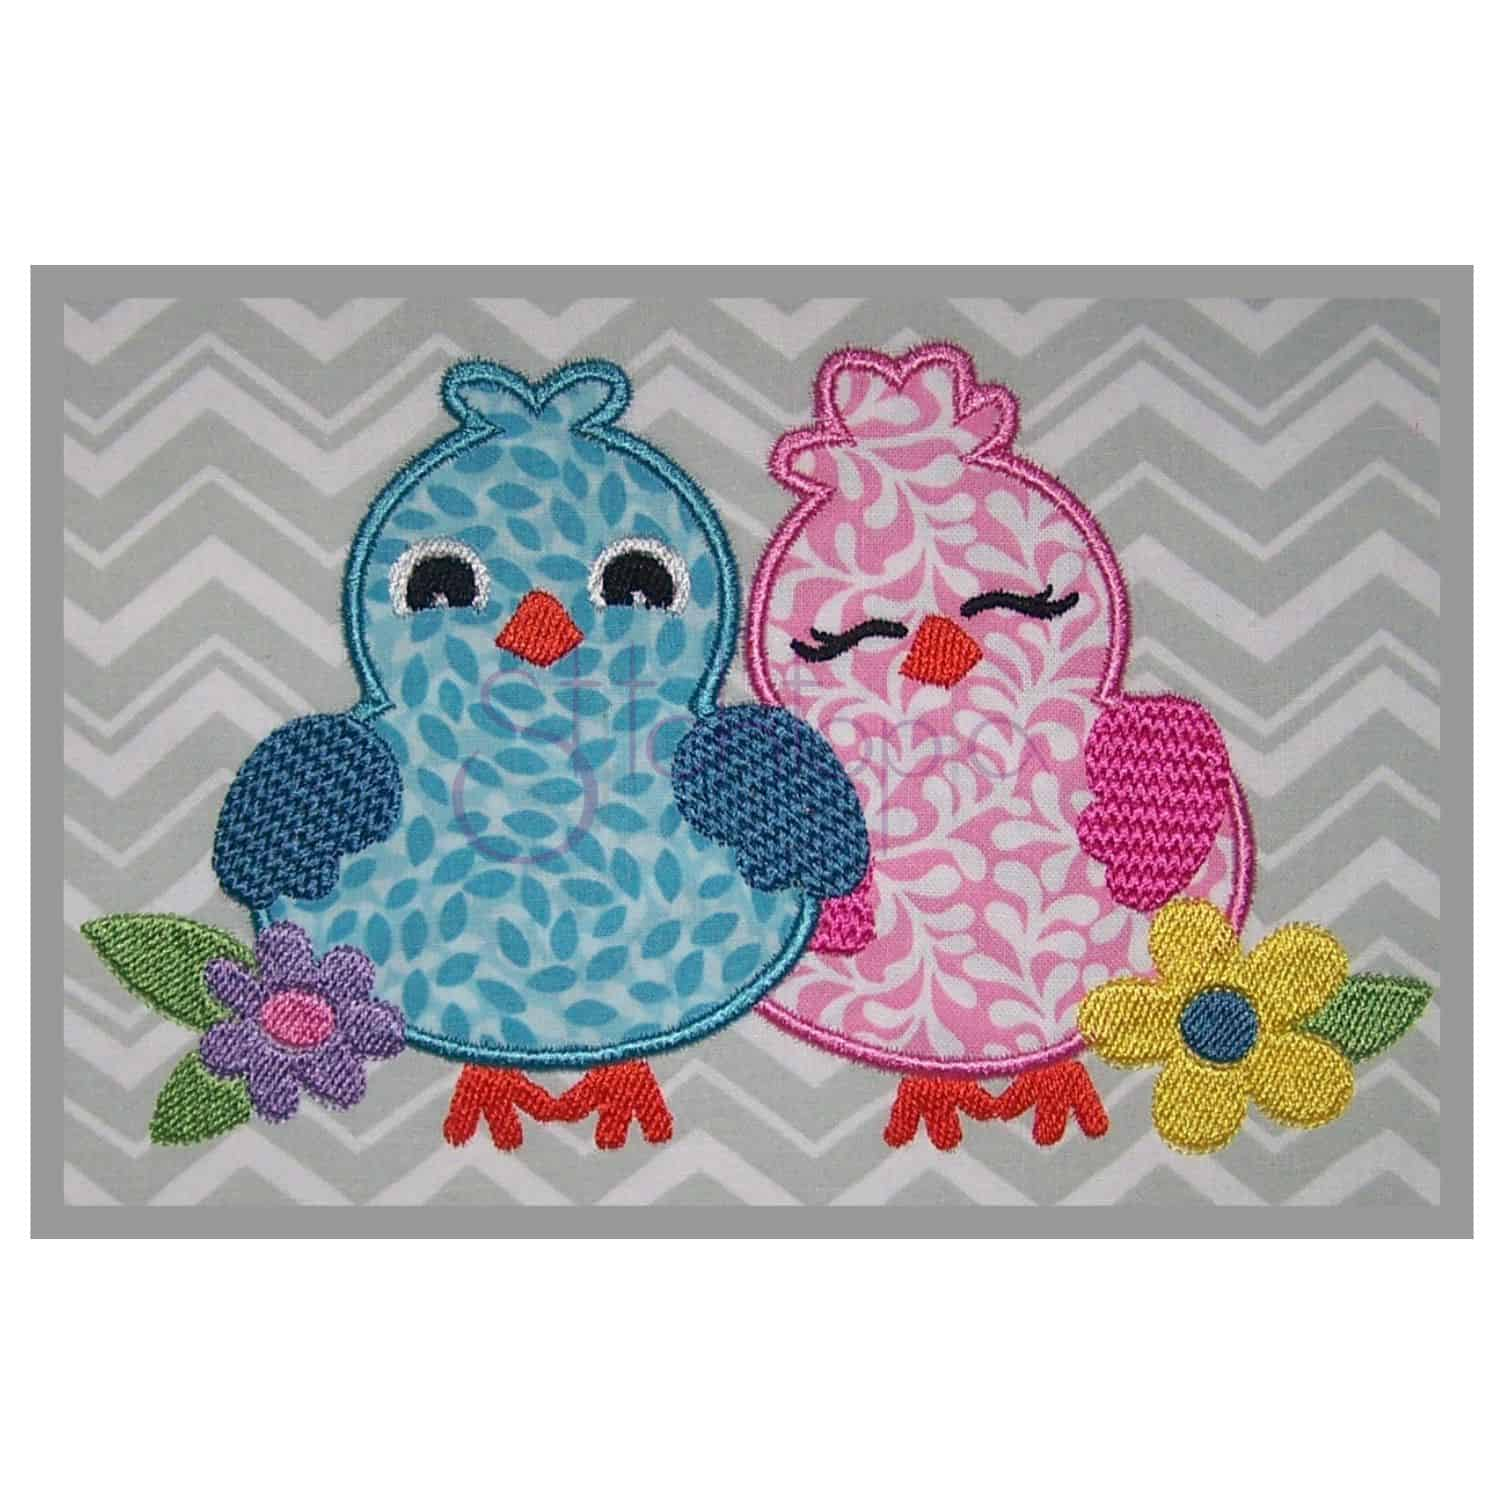 Applique Bird Applique Design Lovebirds Stitchtopia